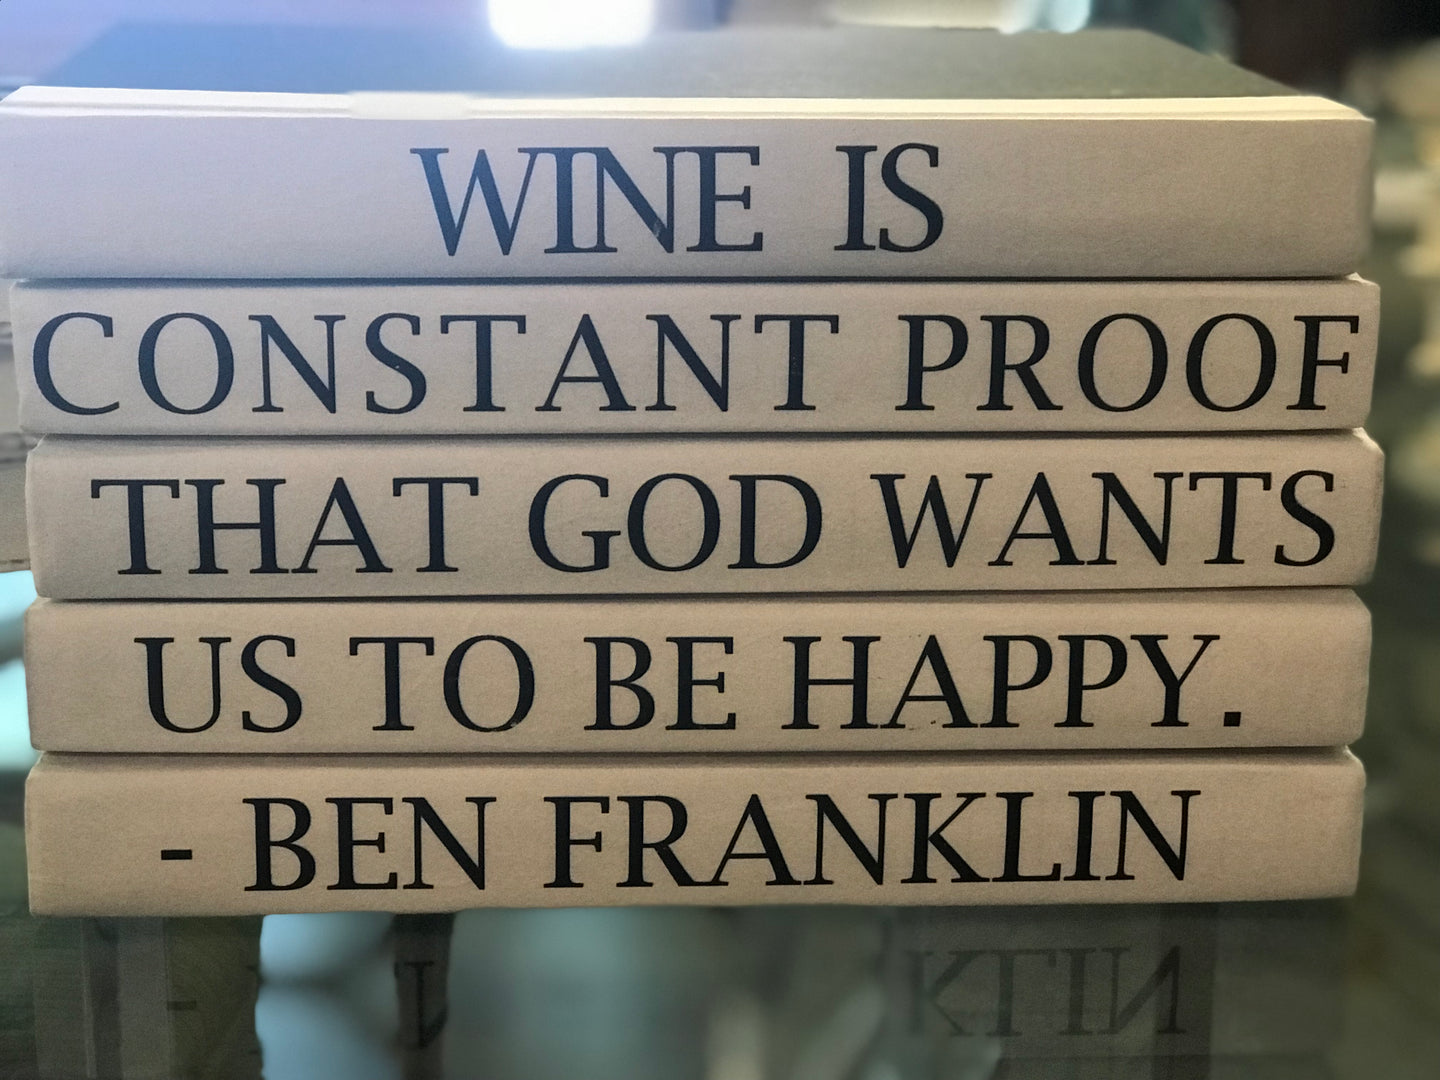 Wine is constant proof that God wants us to be happy